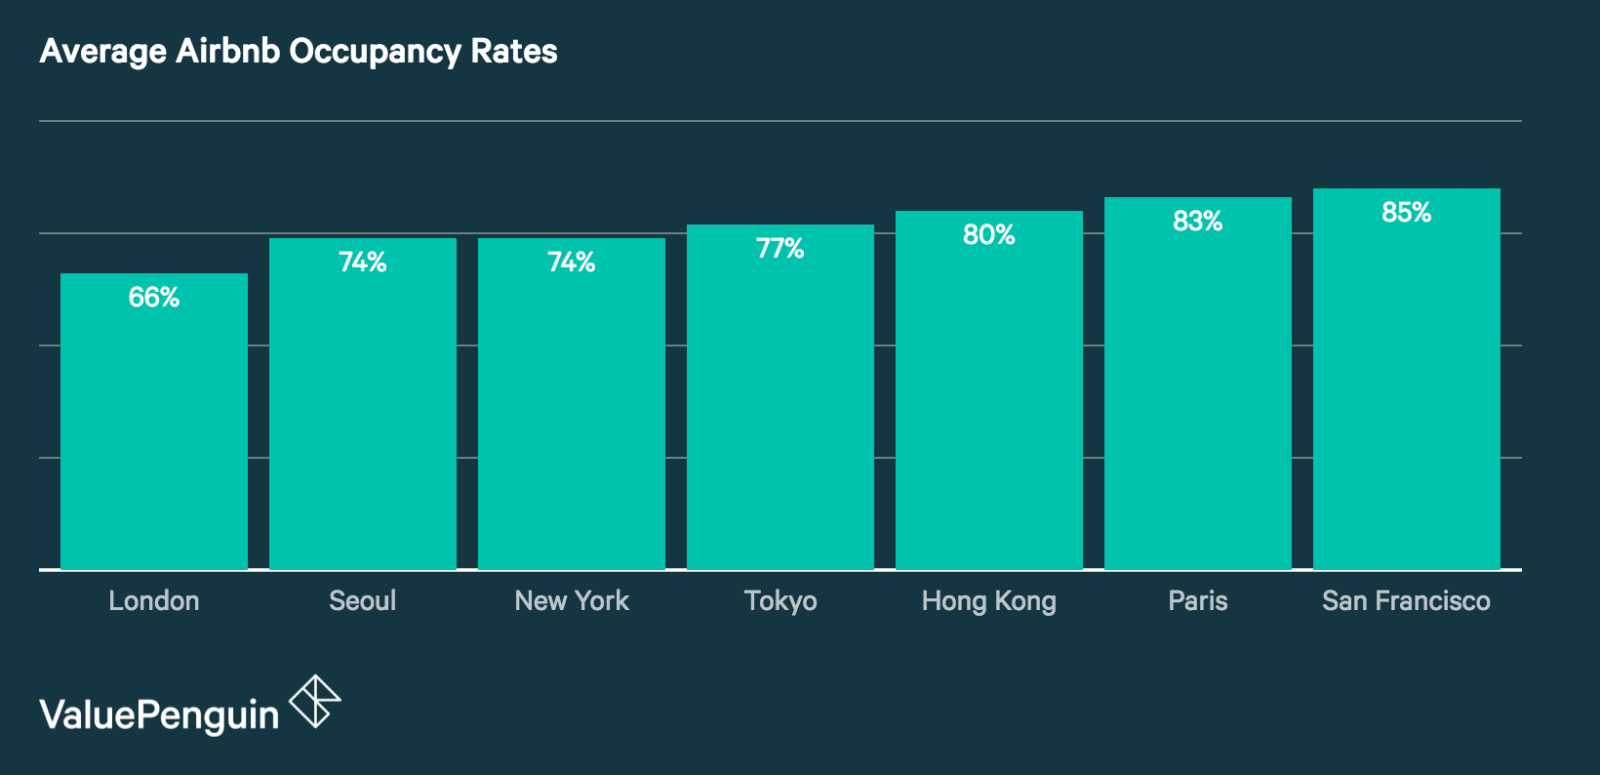 Average Airbnb Occupancy Rate